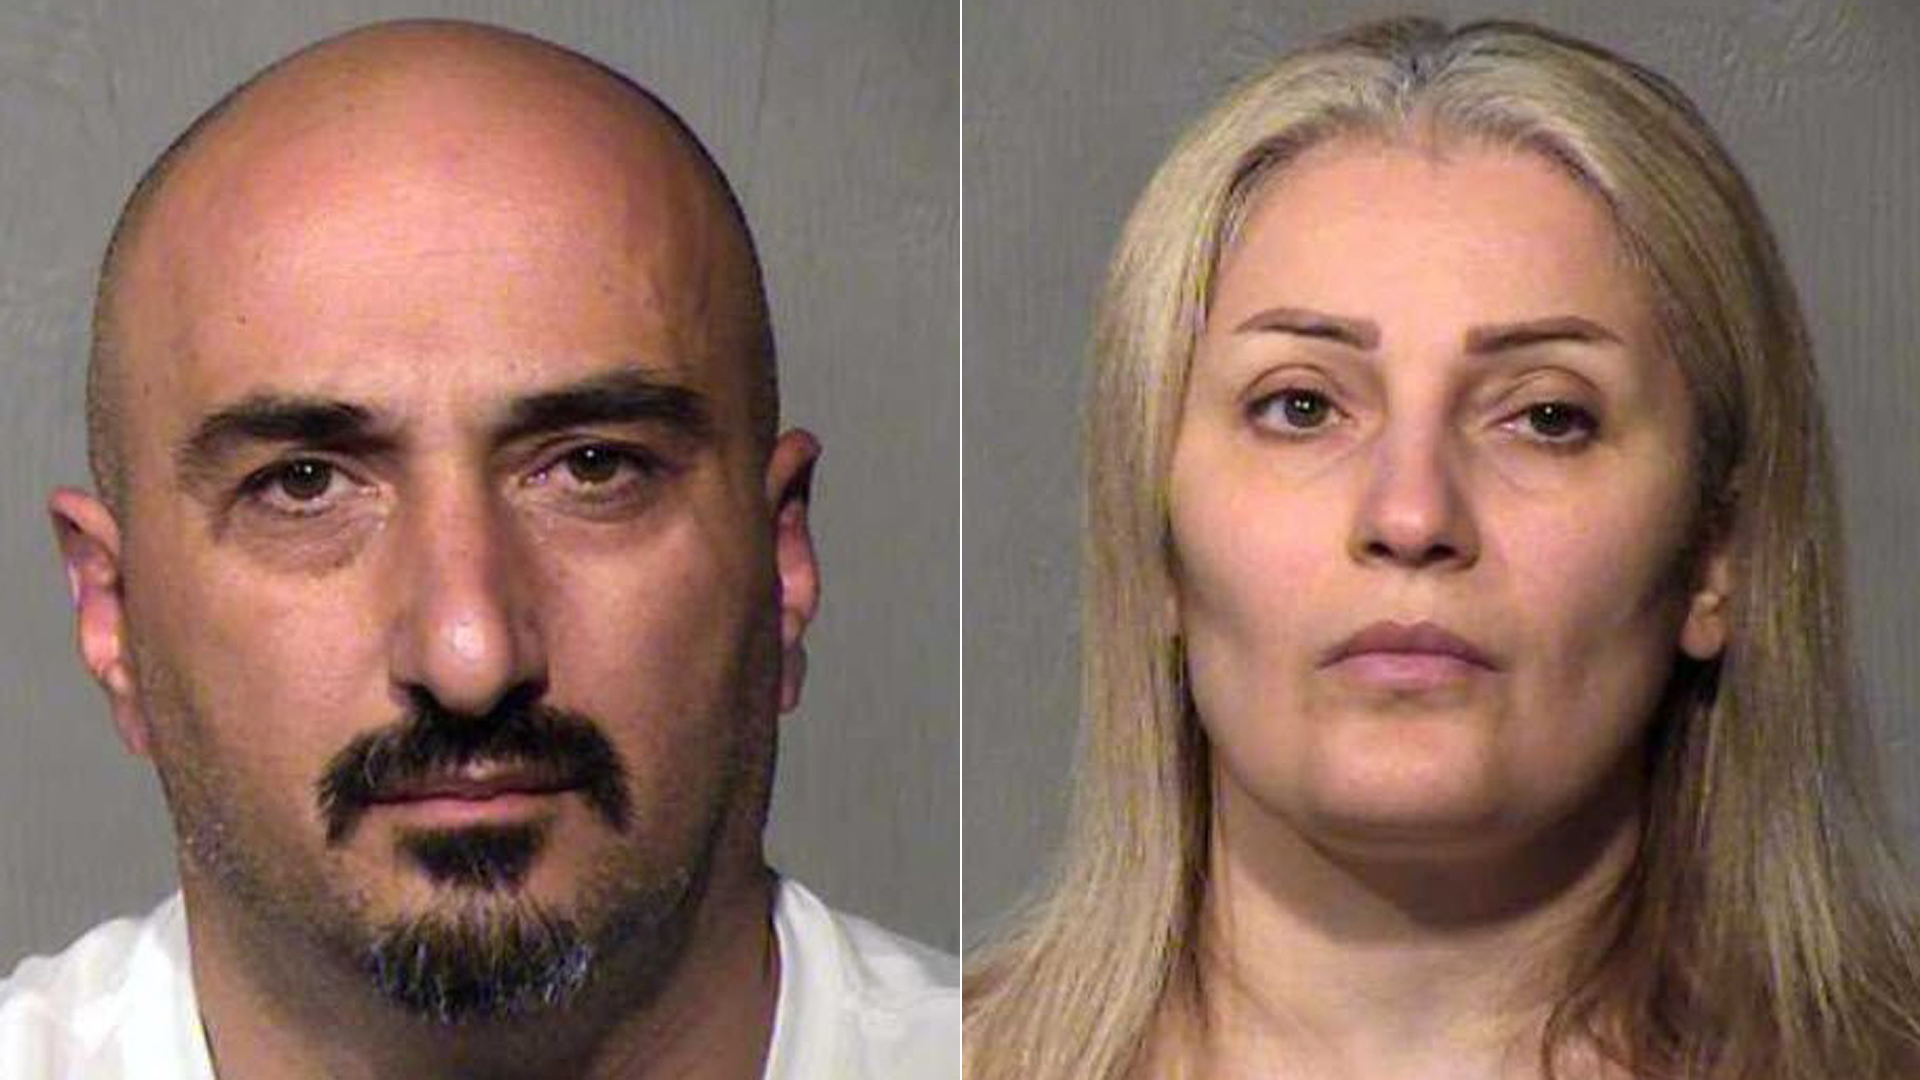 Rafid Khoshi, left, and Manal Sulaiman, right, are seen in booking photos released by Chandler police.